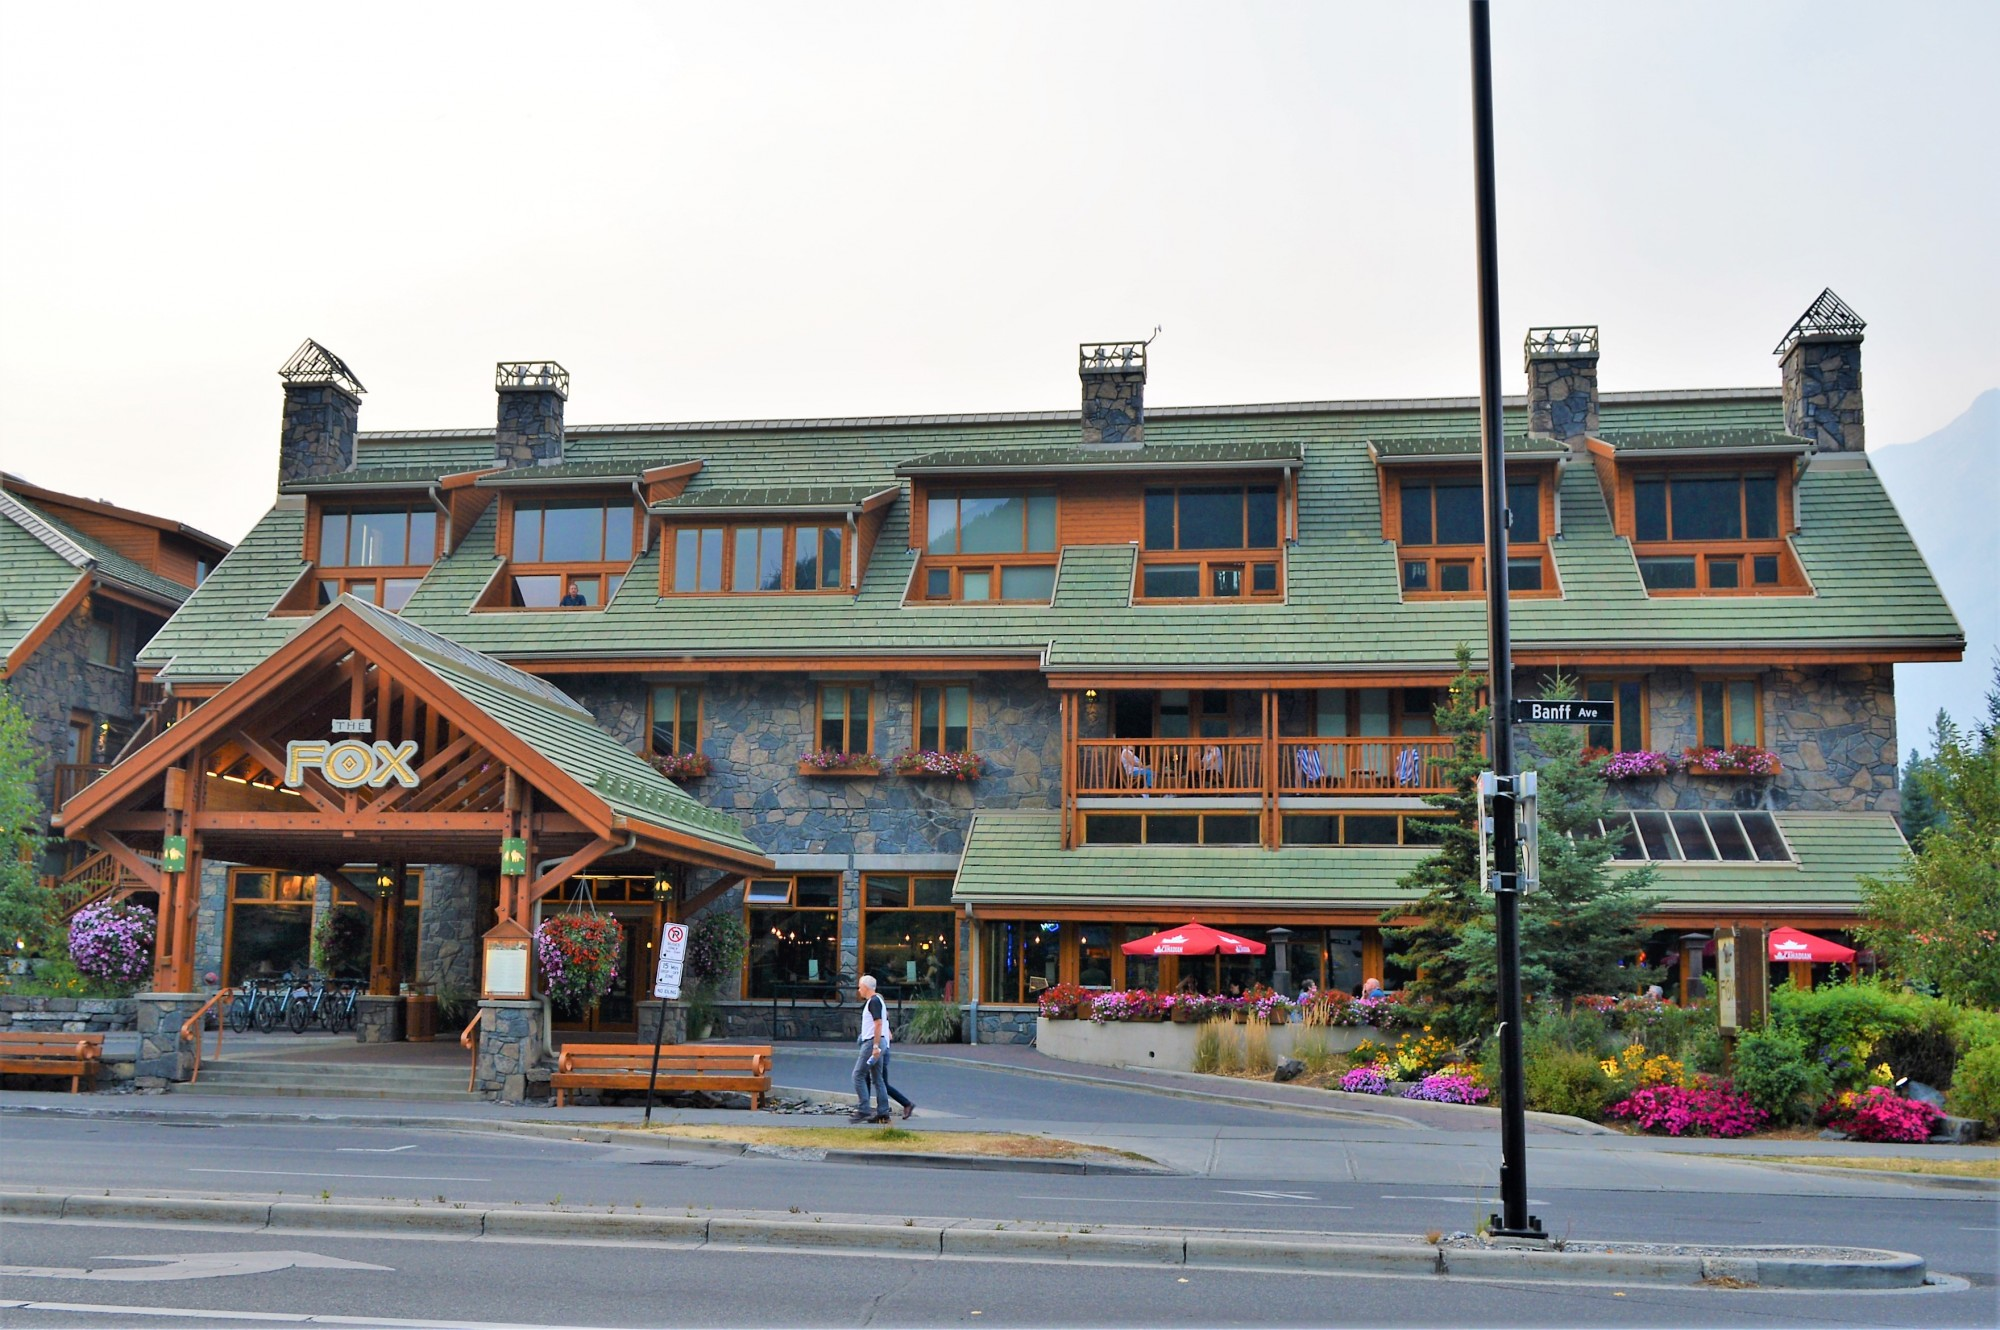 The Fox Hotel, Banff